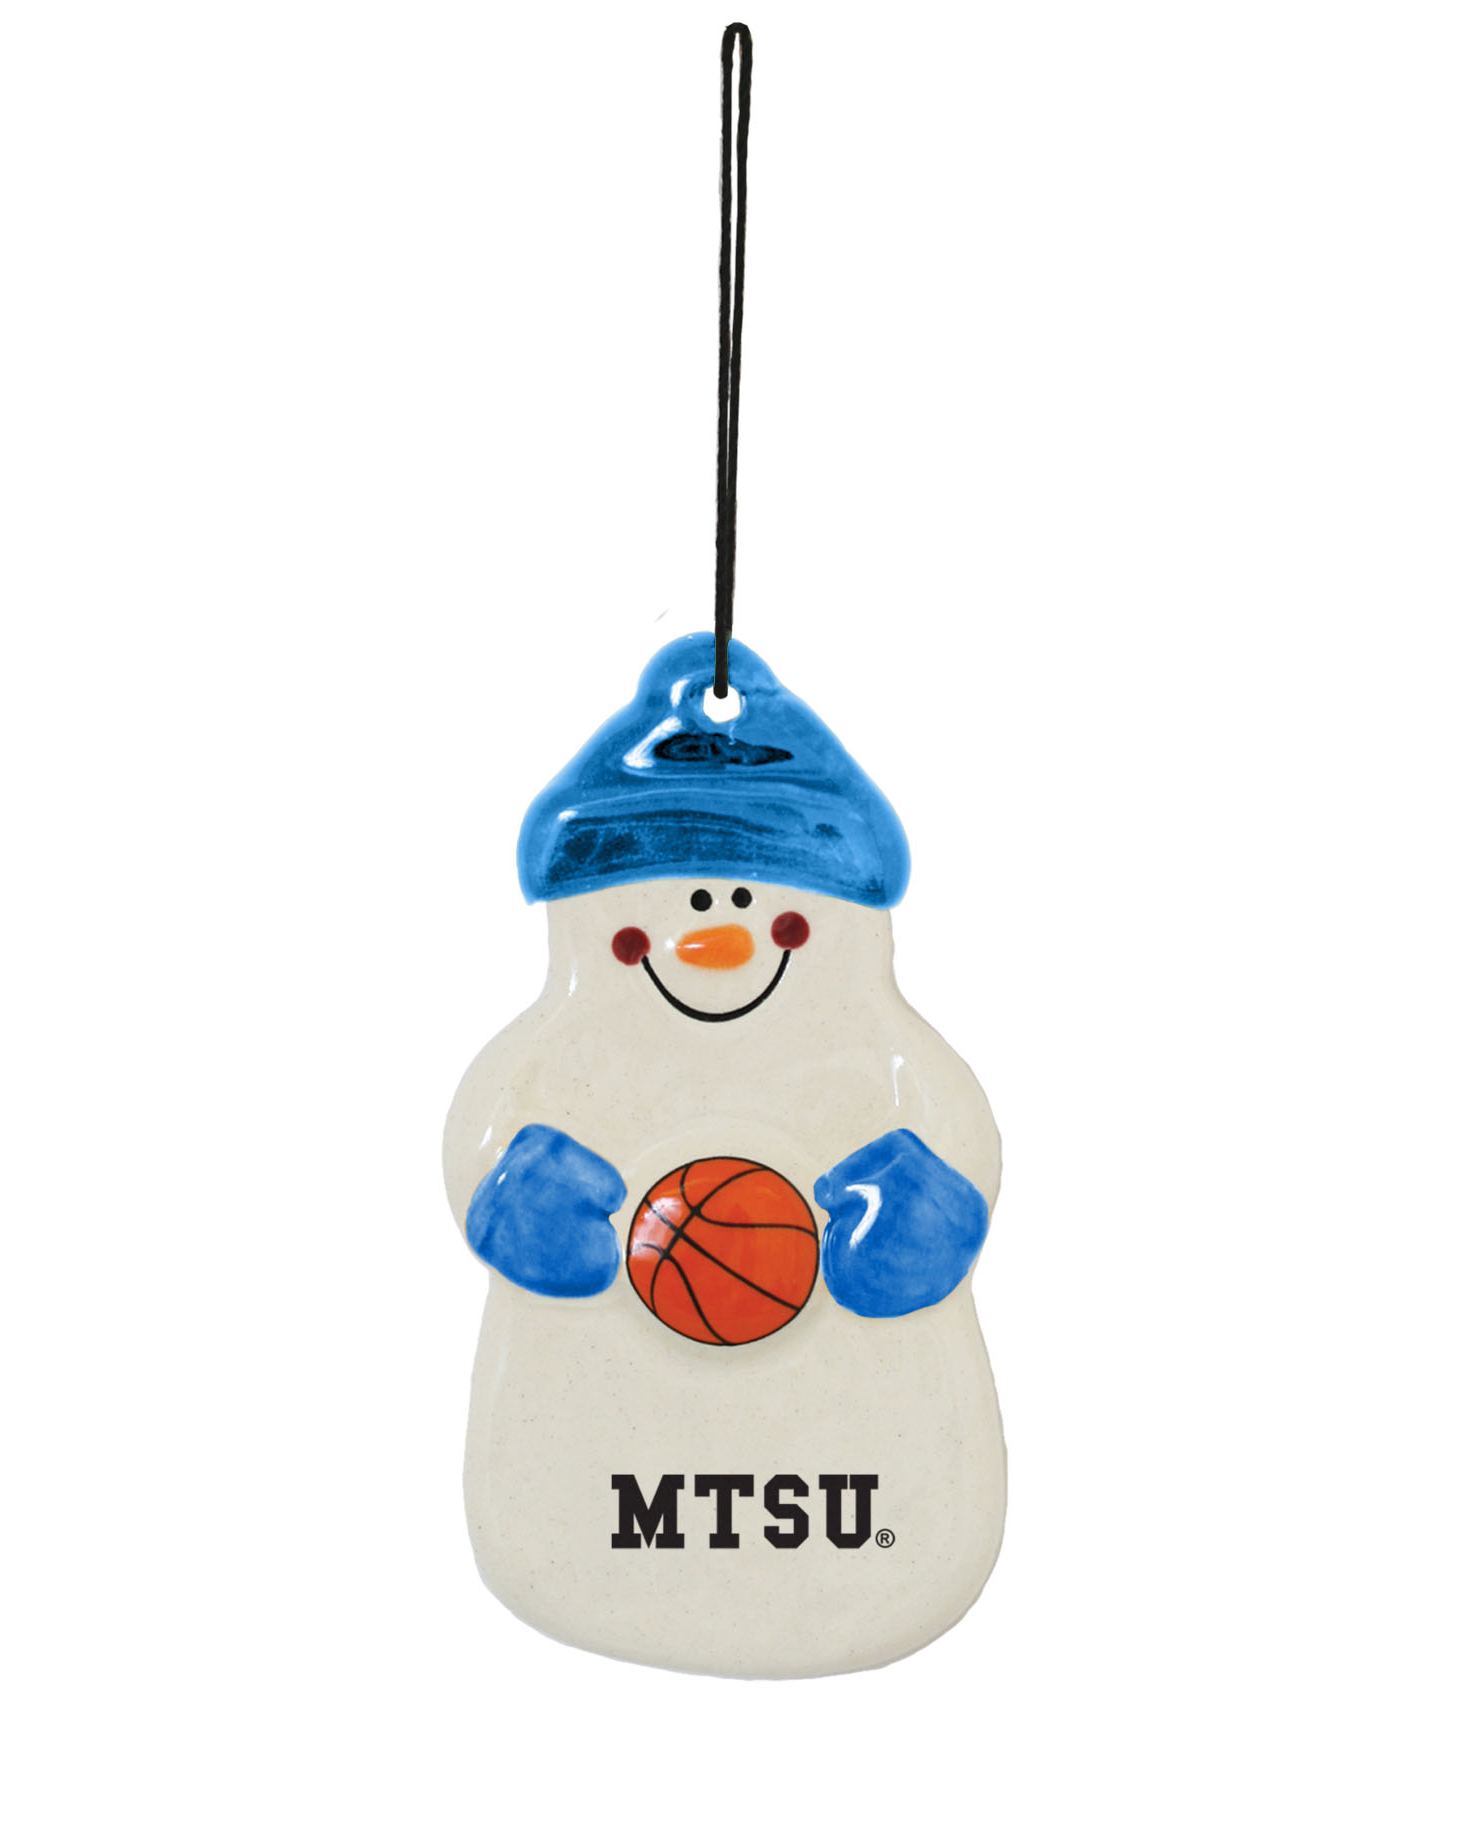 MTSU Snowman Basketball Ornament